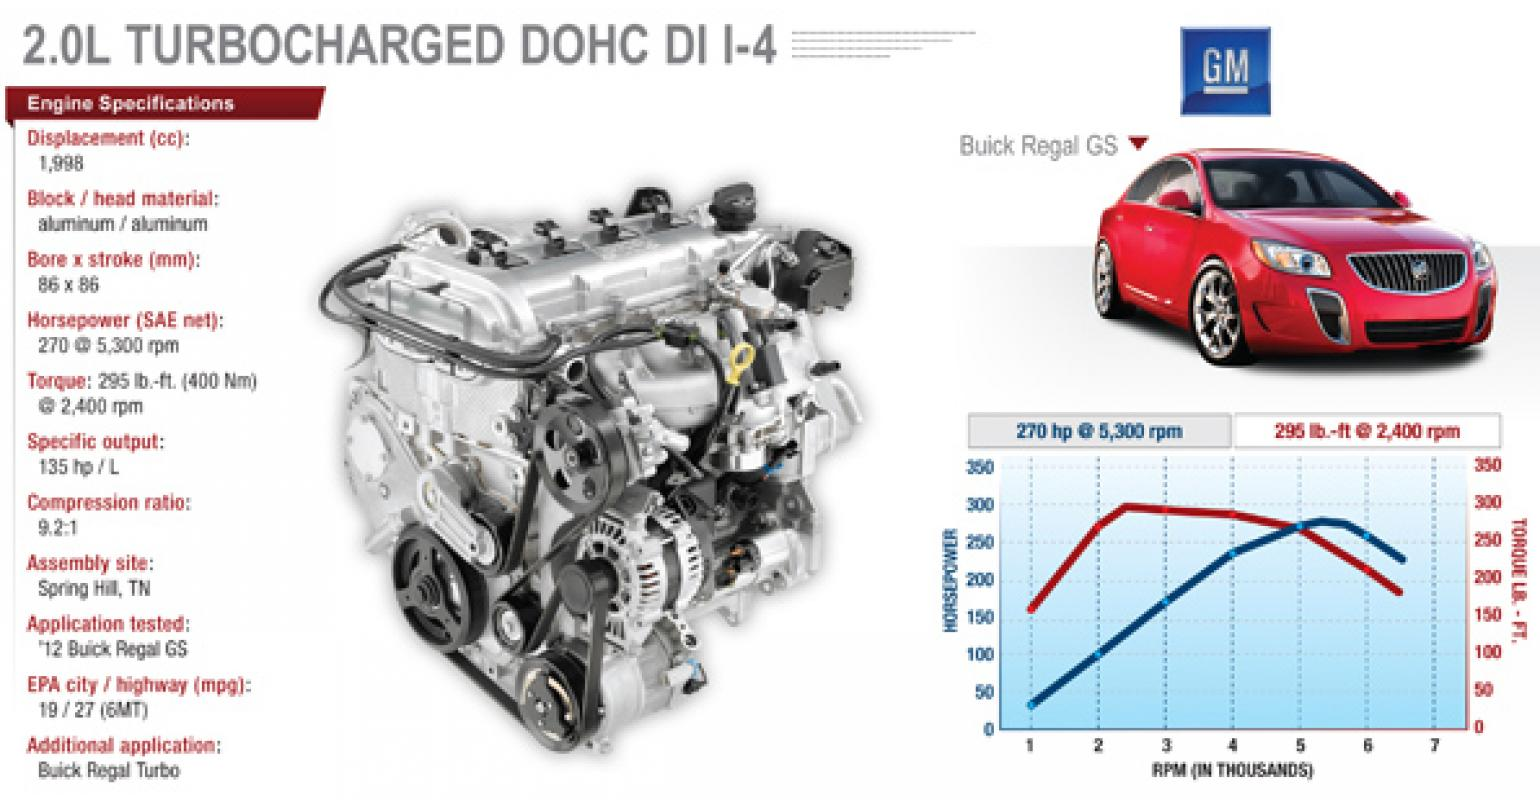 buick regal gs turbo beats everyone in output [ 1540 x 800 Pixel ]